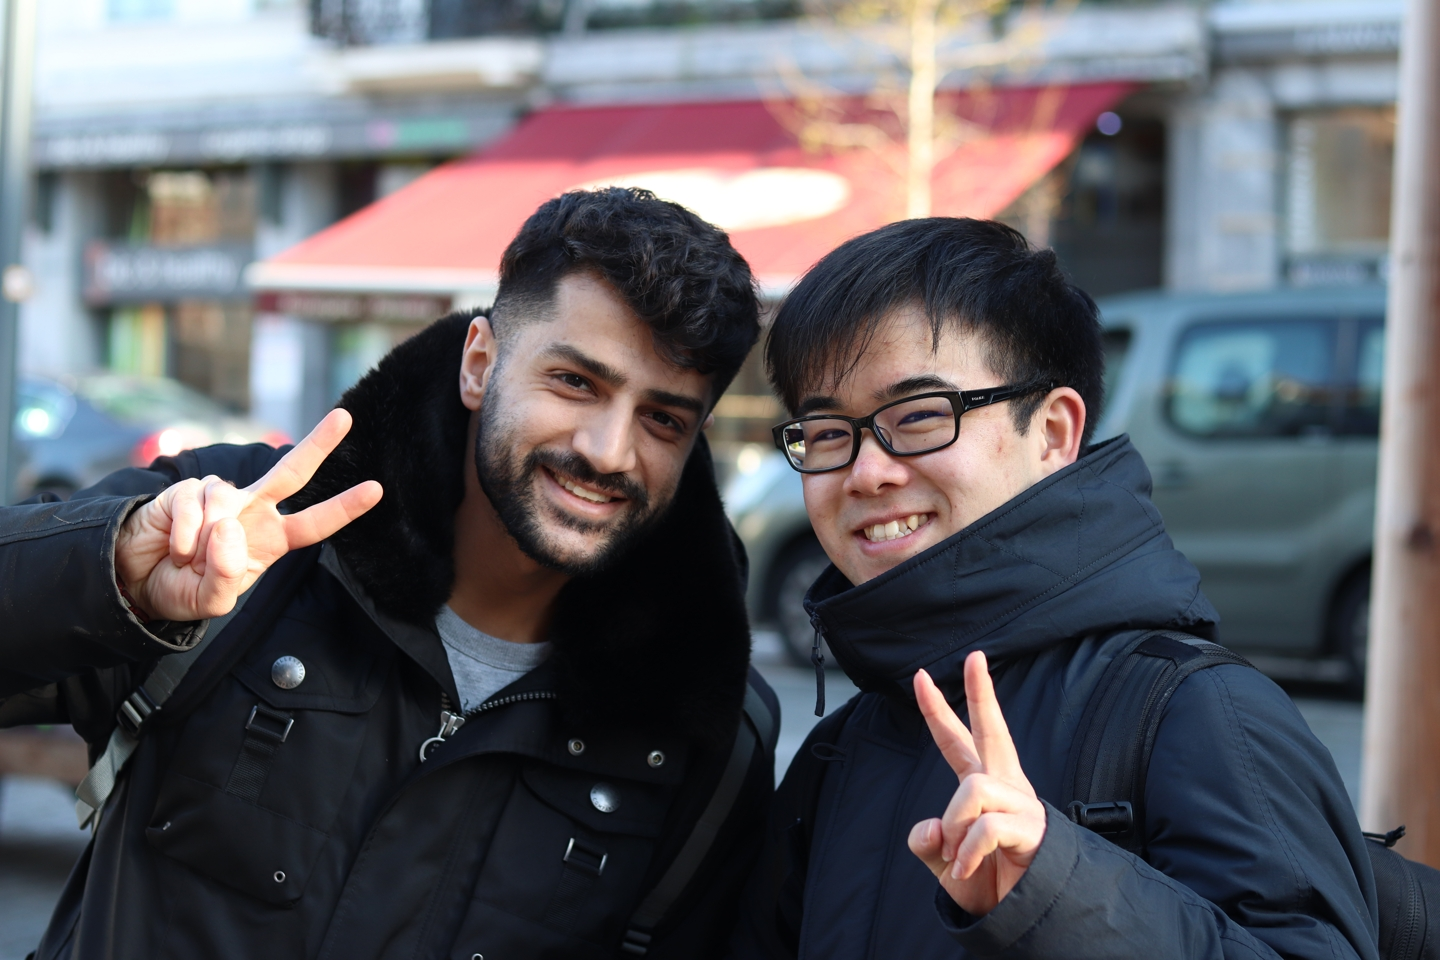 Two students smiling and showing the peace sign at the trip to brussels